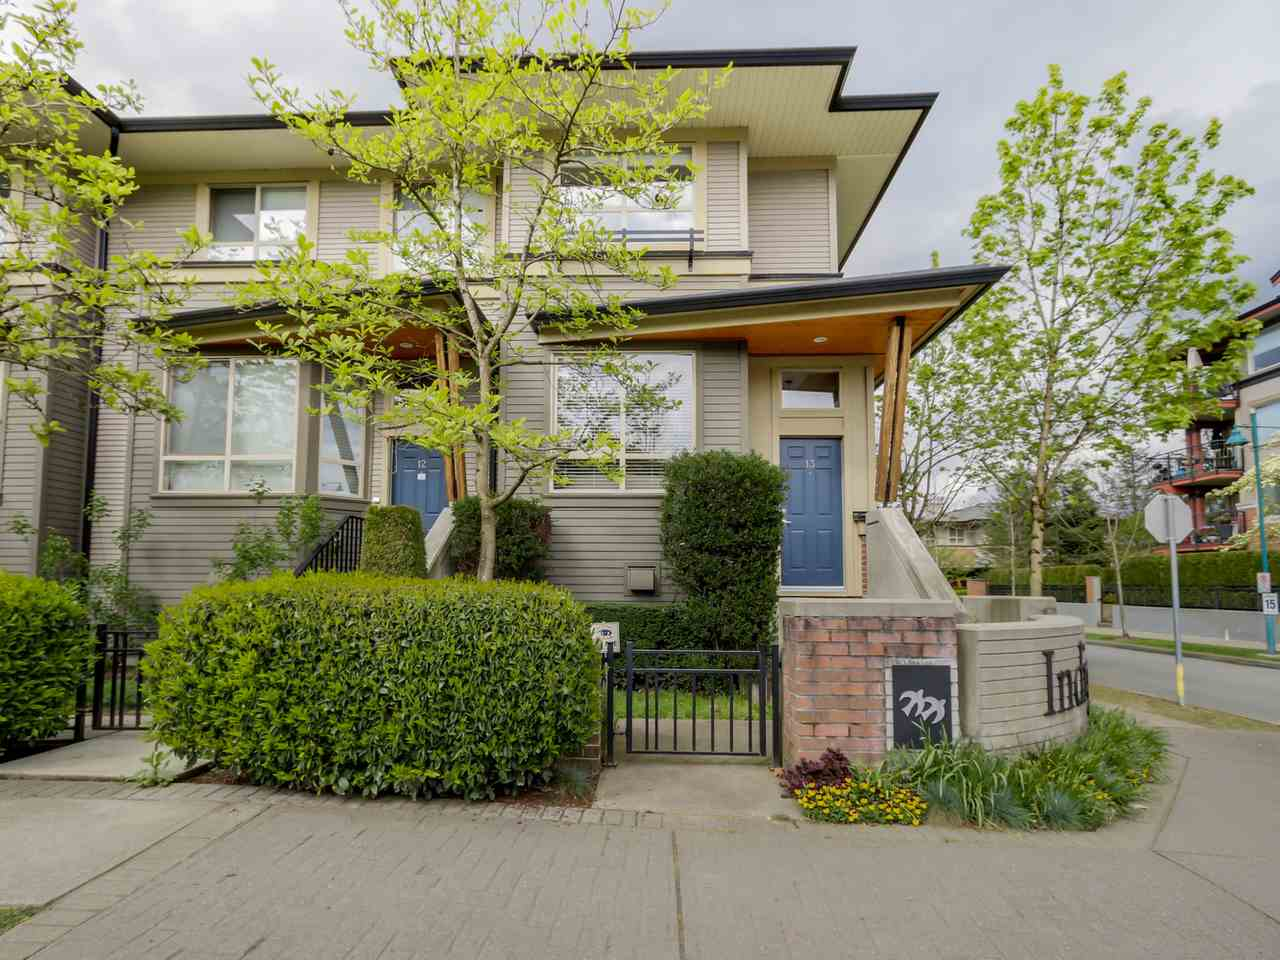 Main Photo: 13 100 KLAHANIE DRIVE in Port Moody: Port Moody Centre Townhouse for sale : MLS(r) # R2056381